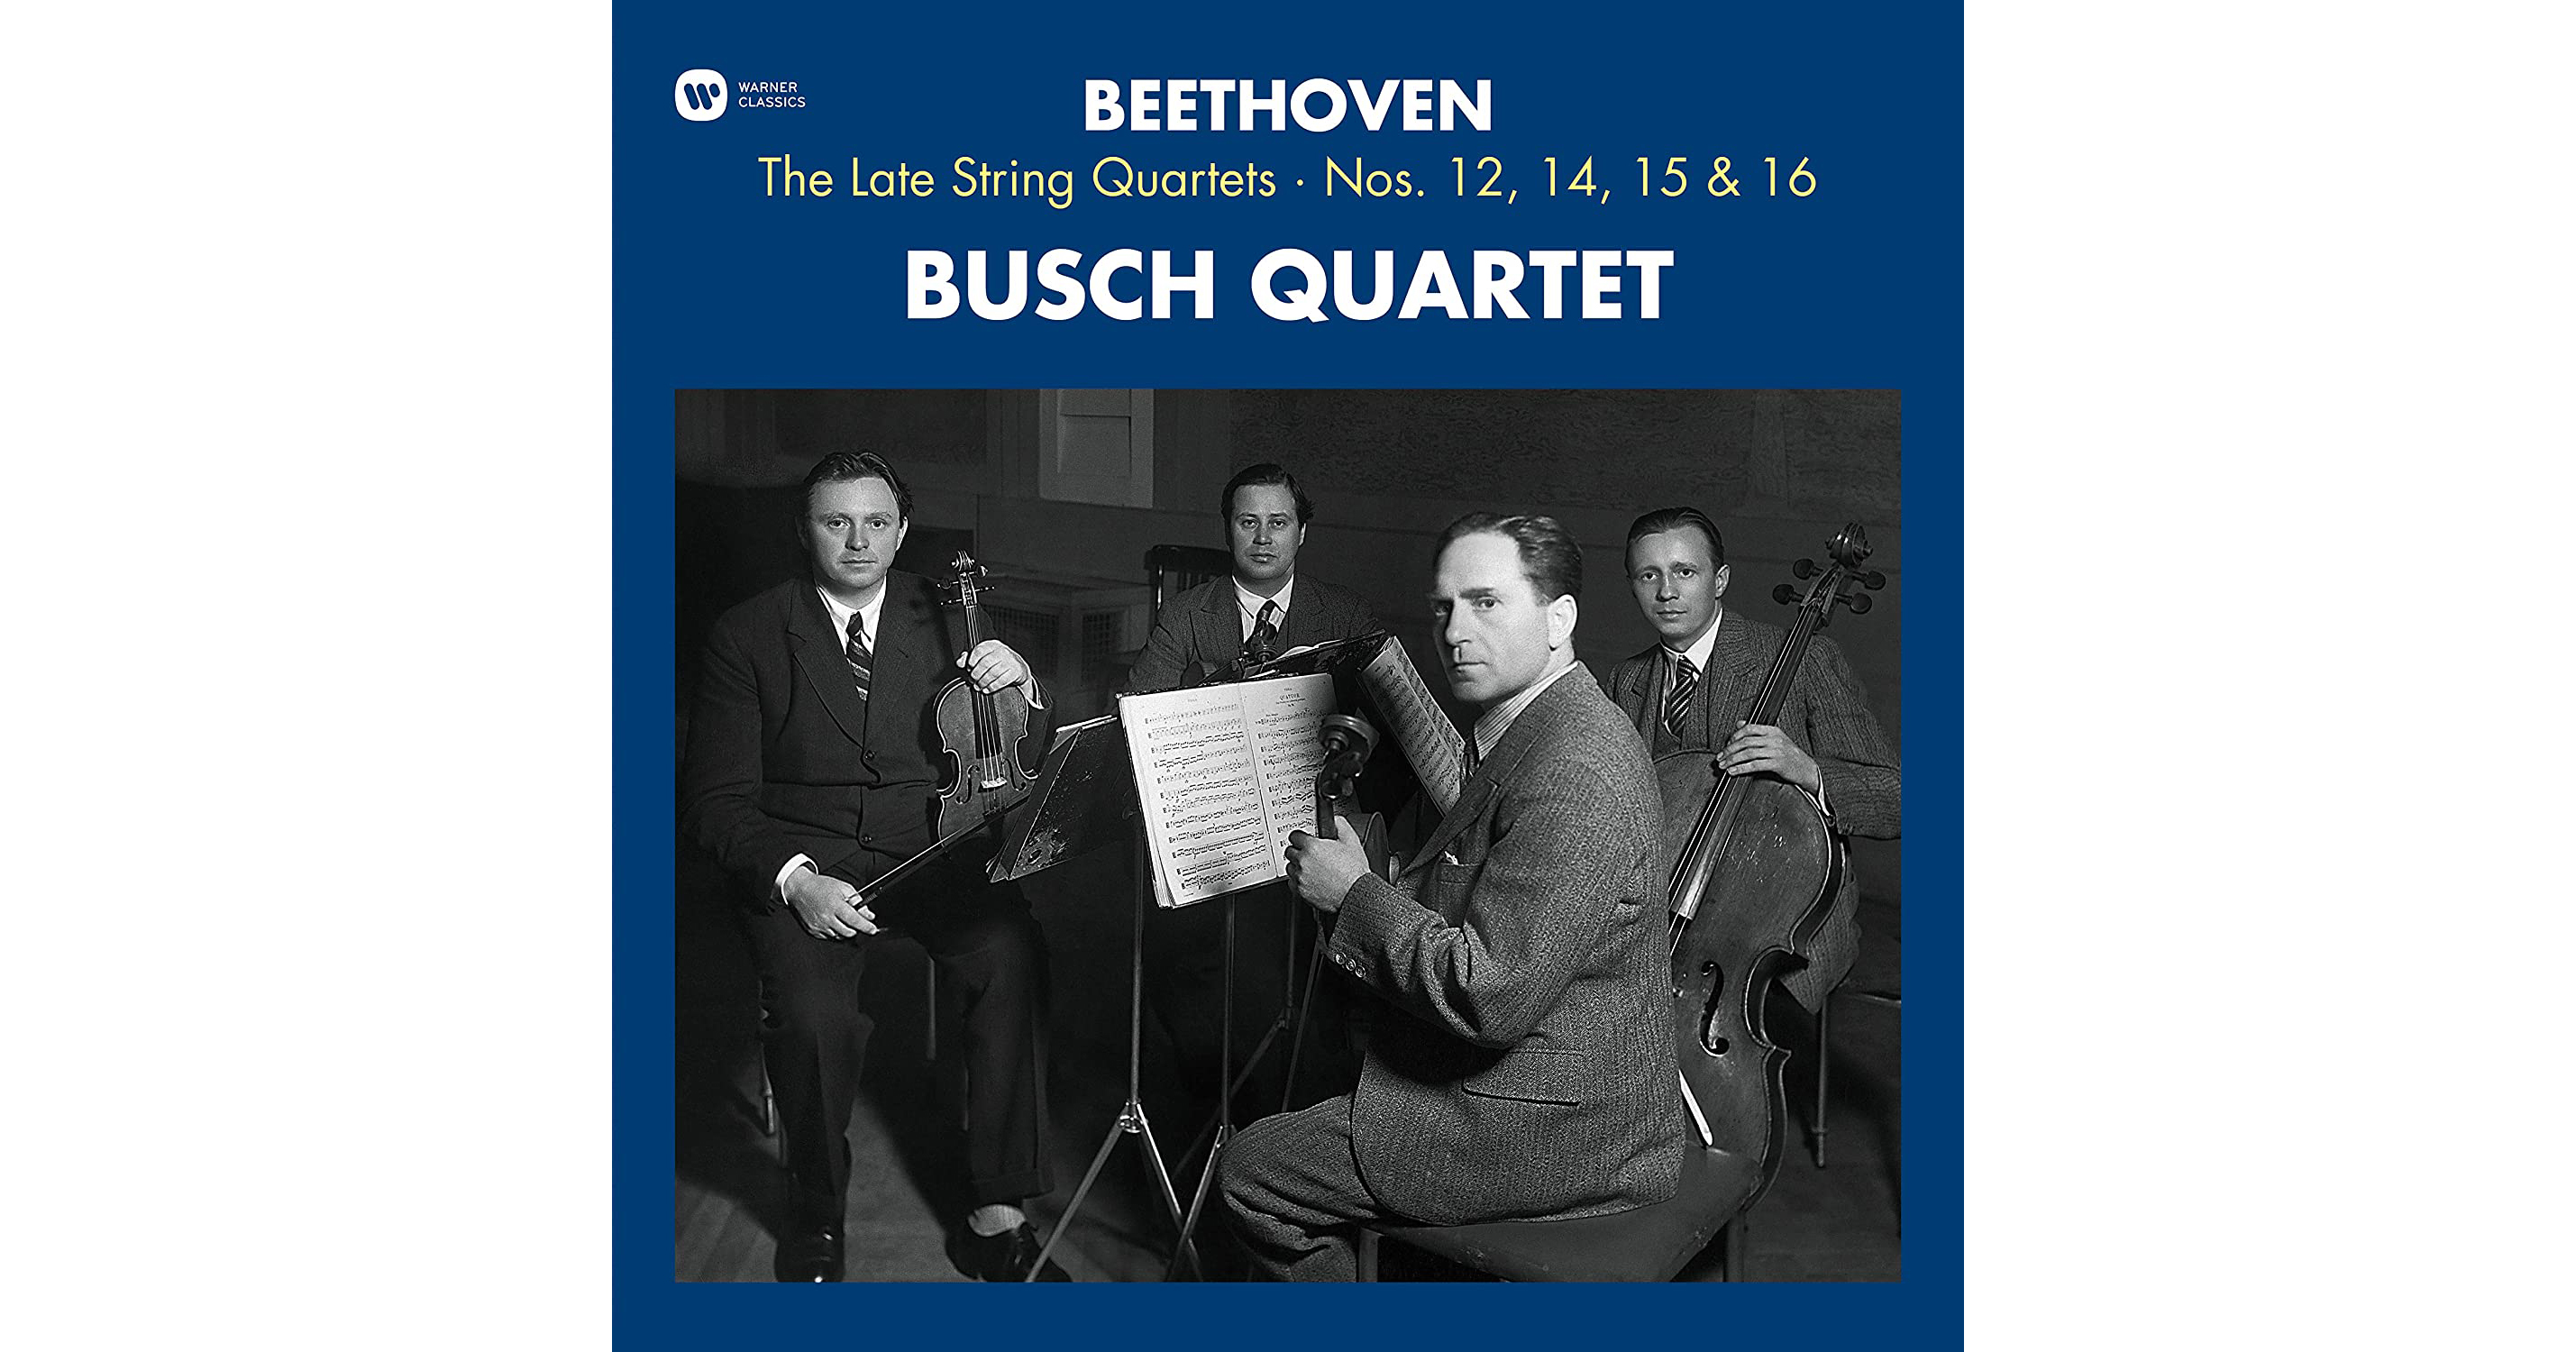 Виниловая пластинка BEETHOVEN - BEETHOVEN: THE LATE STRING QUARTETS (180 GR, 3 LP)